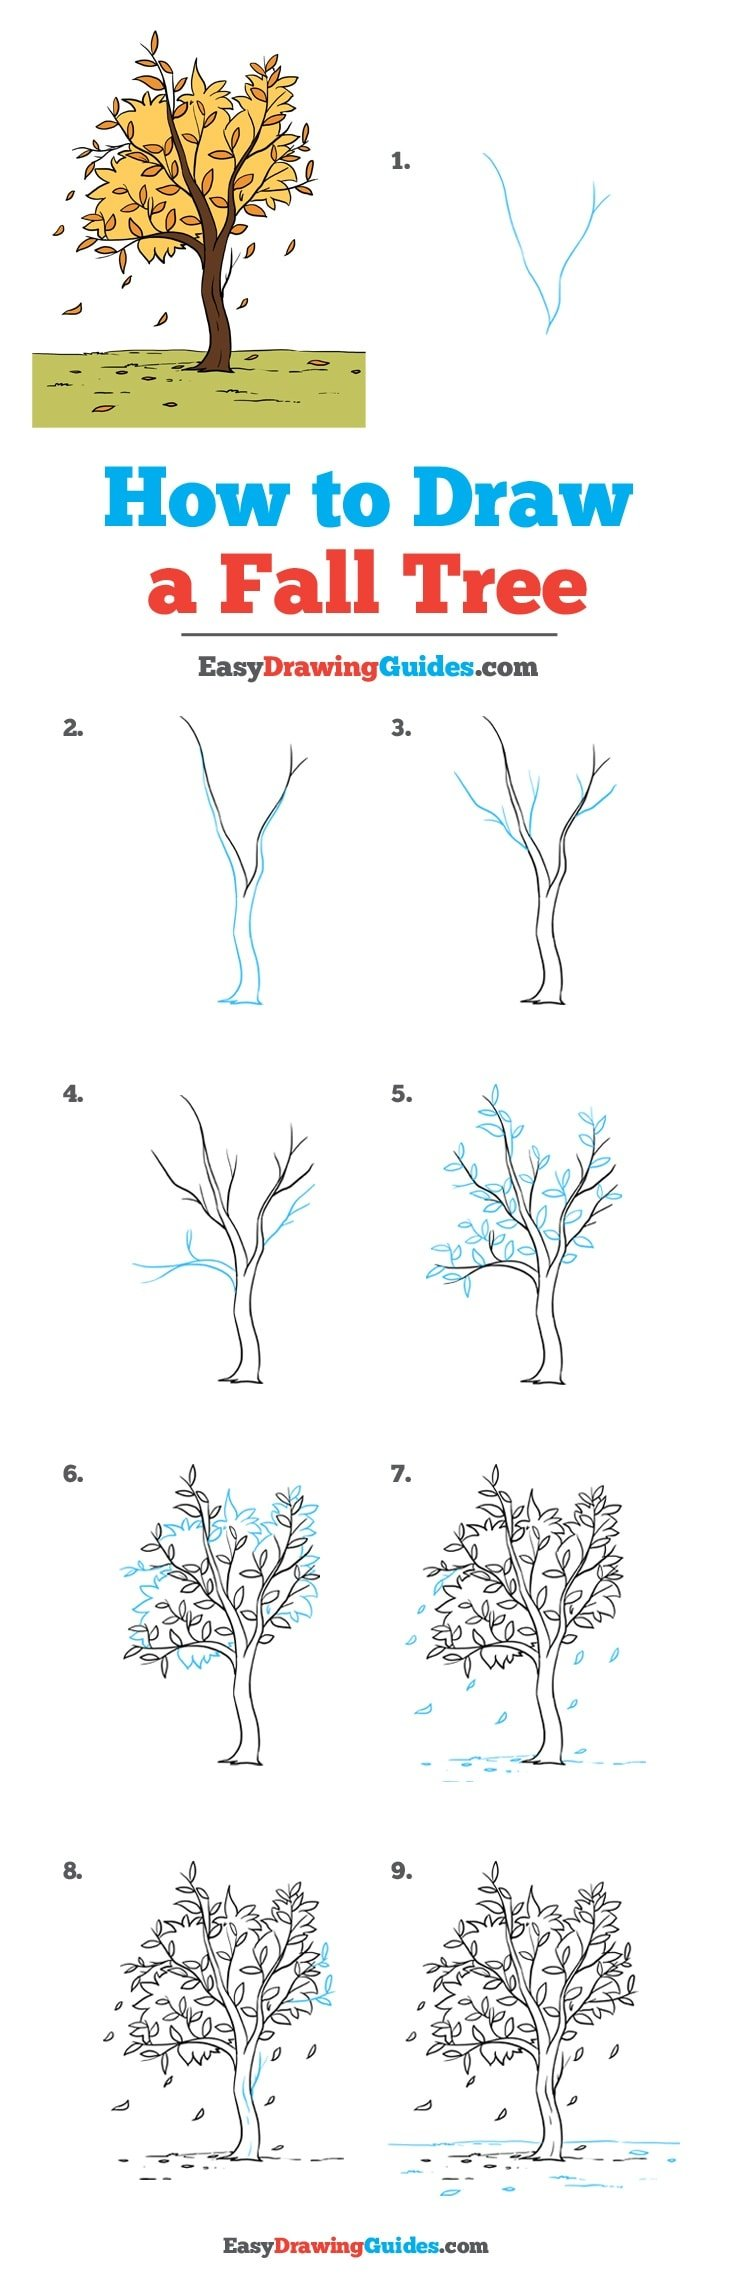 How to Draw Fall Tree